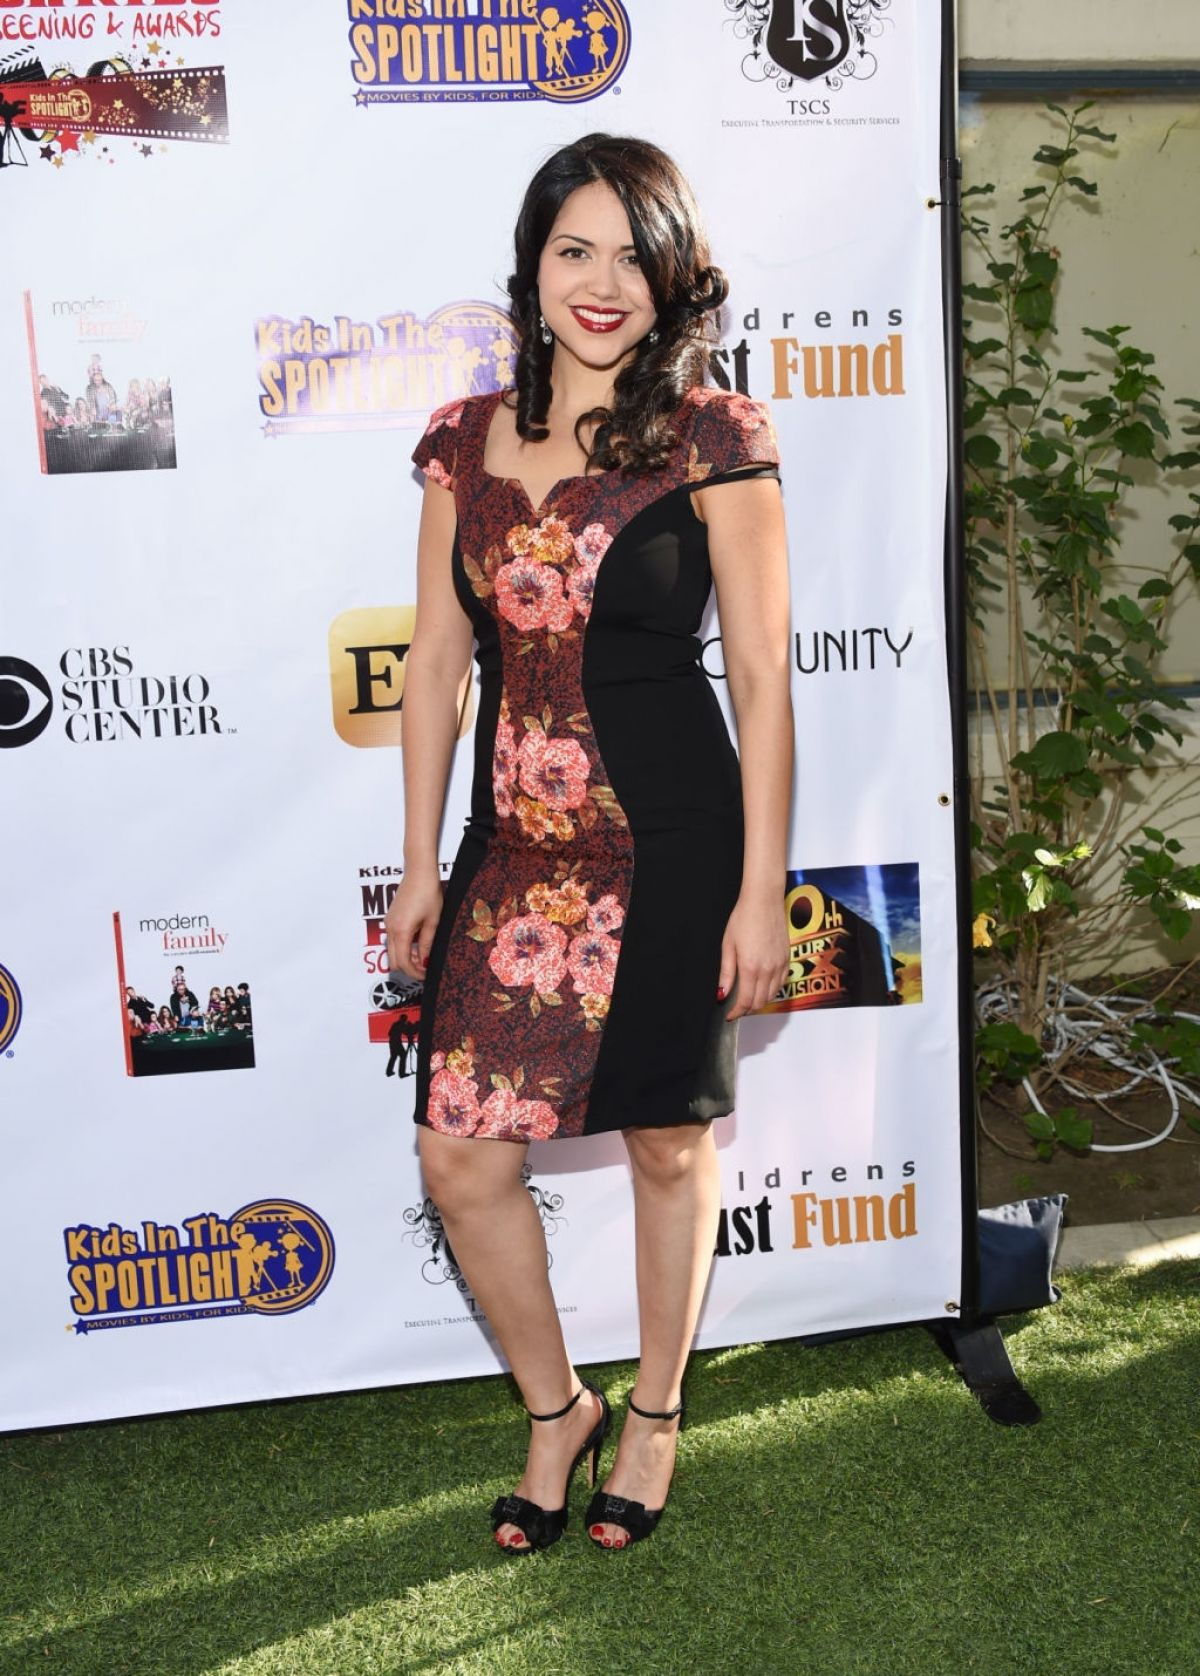 ALYSSA DIAZ at Kids in the Spotlight Film Awards 11/07/2015